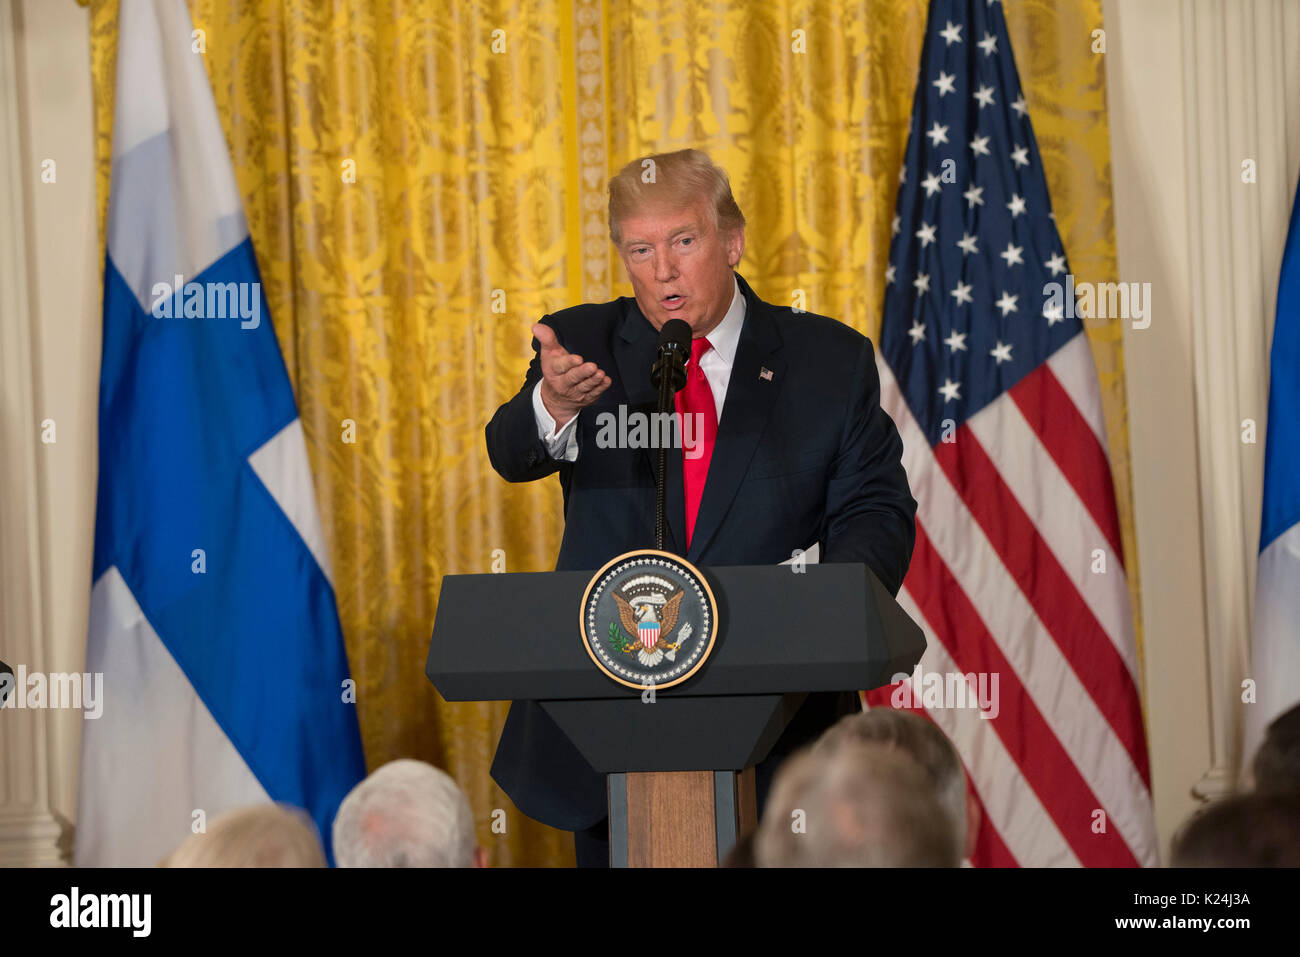 nald J. Trump and President Sauli Niinisto of Finland takes place in the East room in the White House. Patsy Lynch/MediaPunch - Stock Image